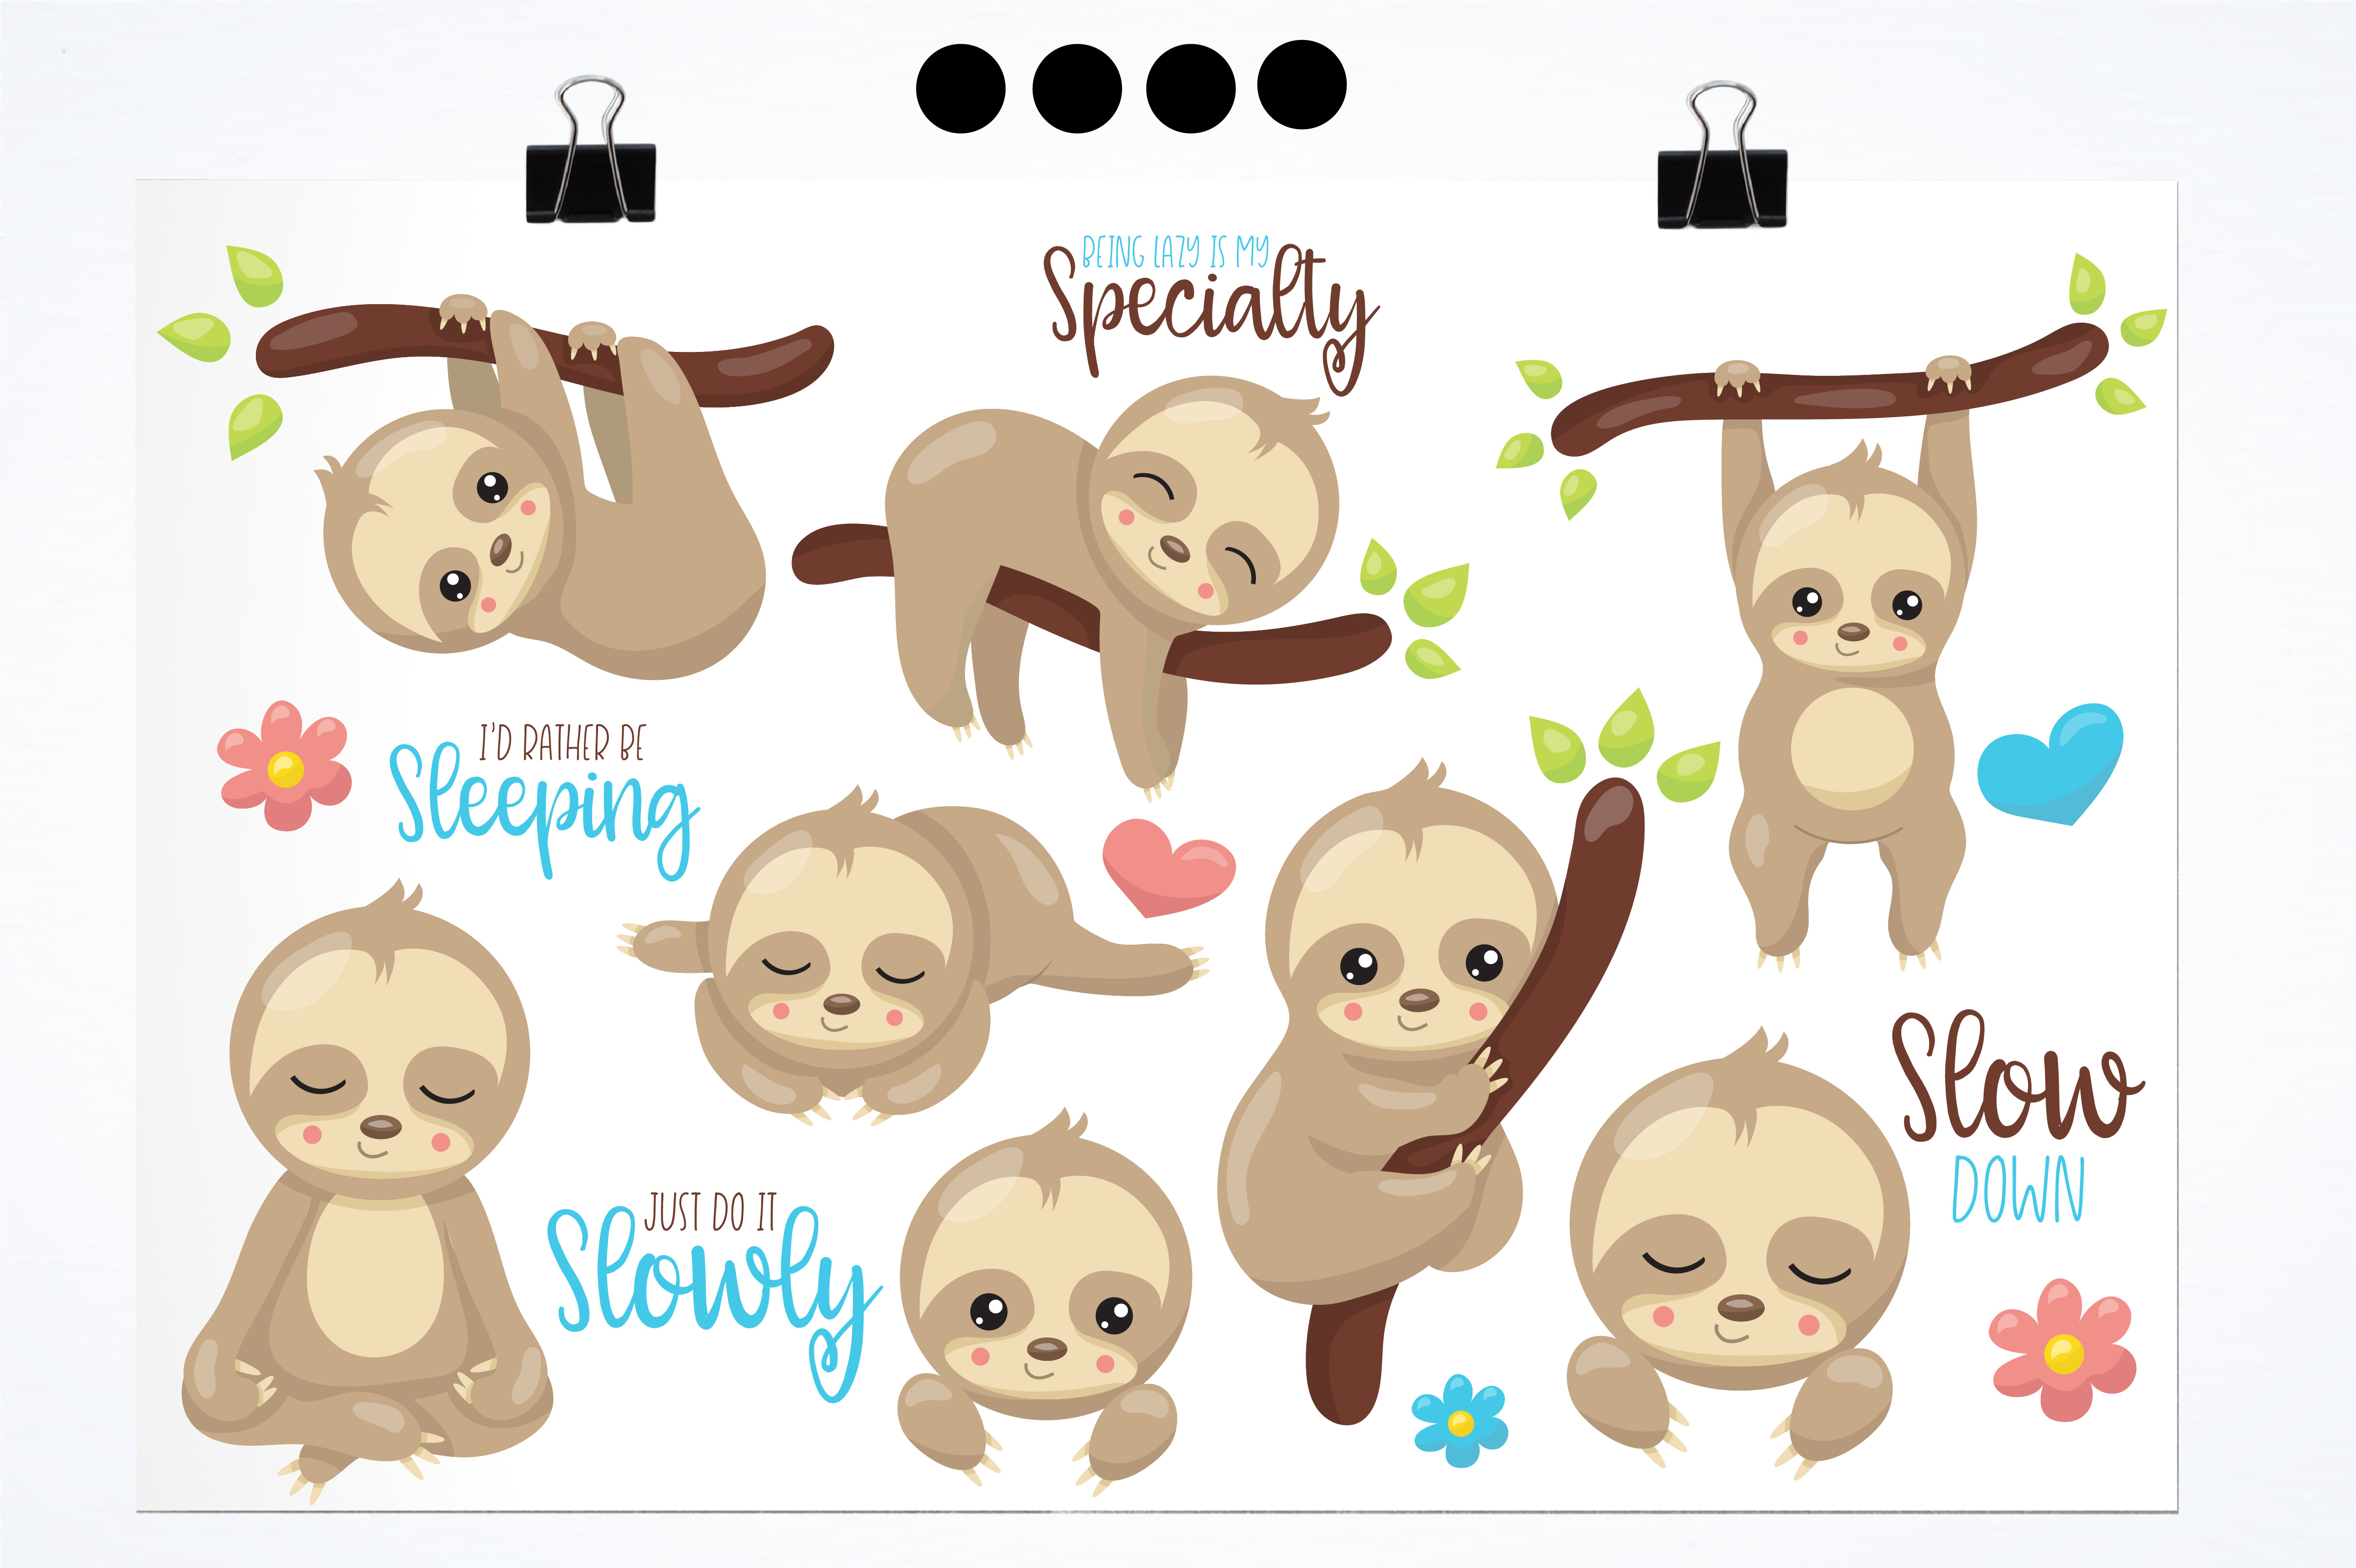 Sleepy sloth graphics and illustrations example image 2